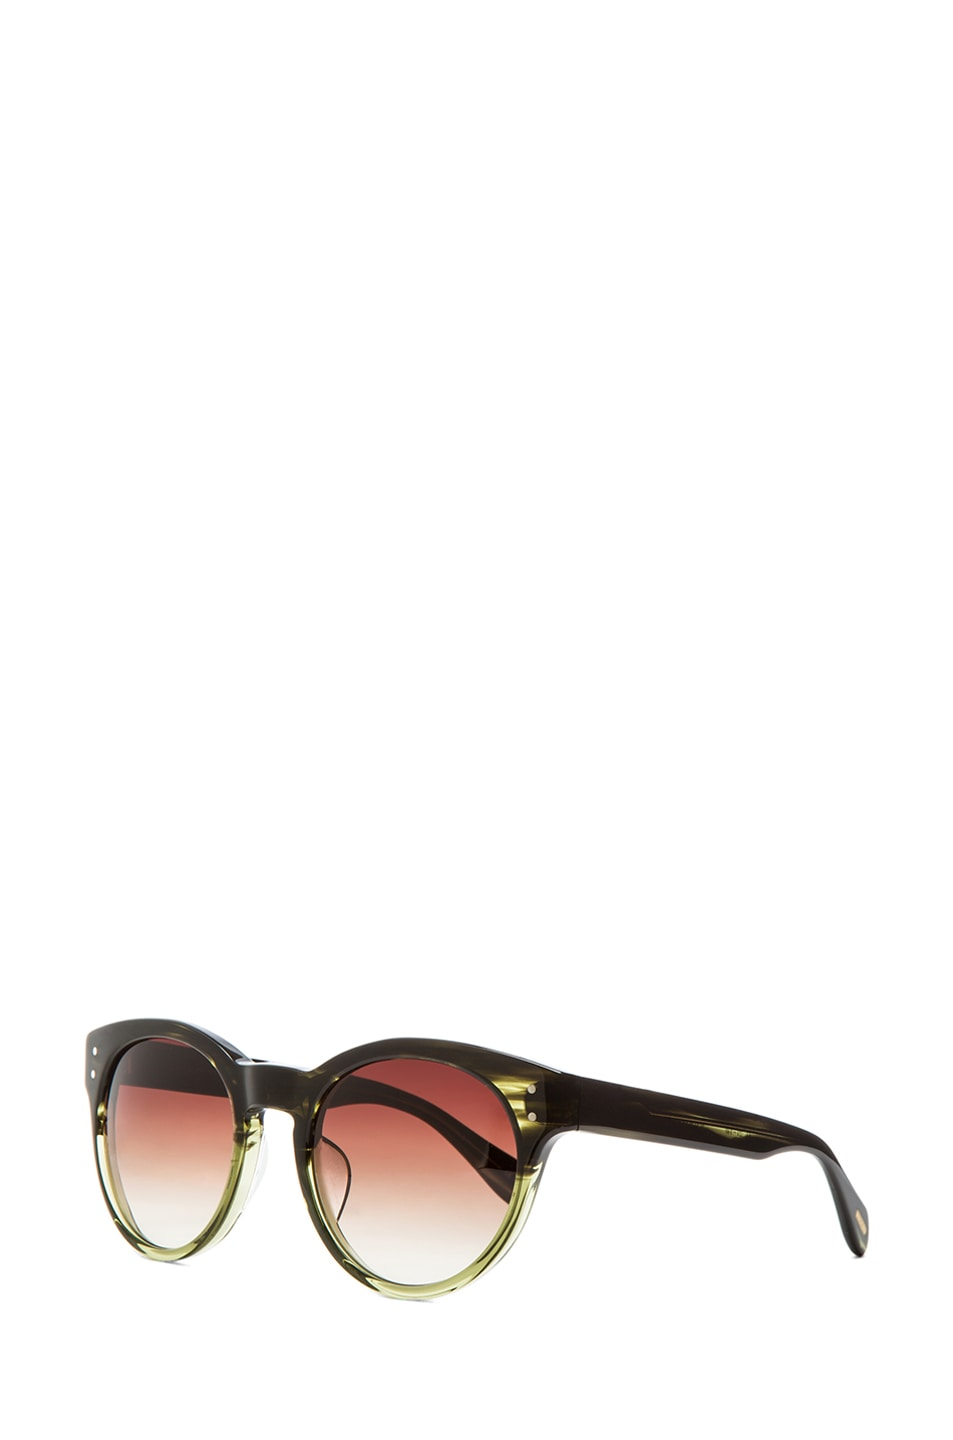 Image 2 of Oliver Peoples for Maison Kitsune Paris Sunglasses in Military